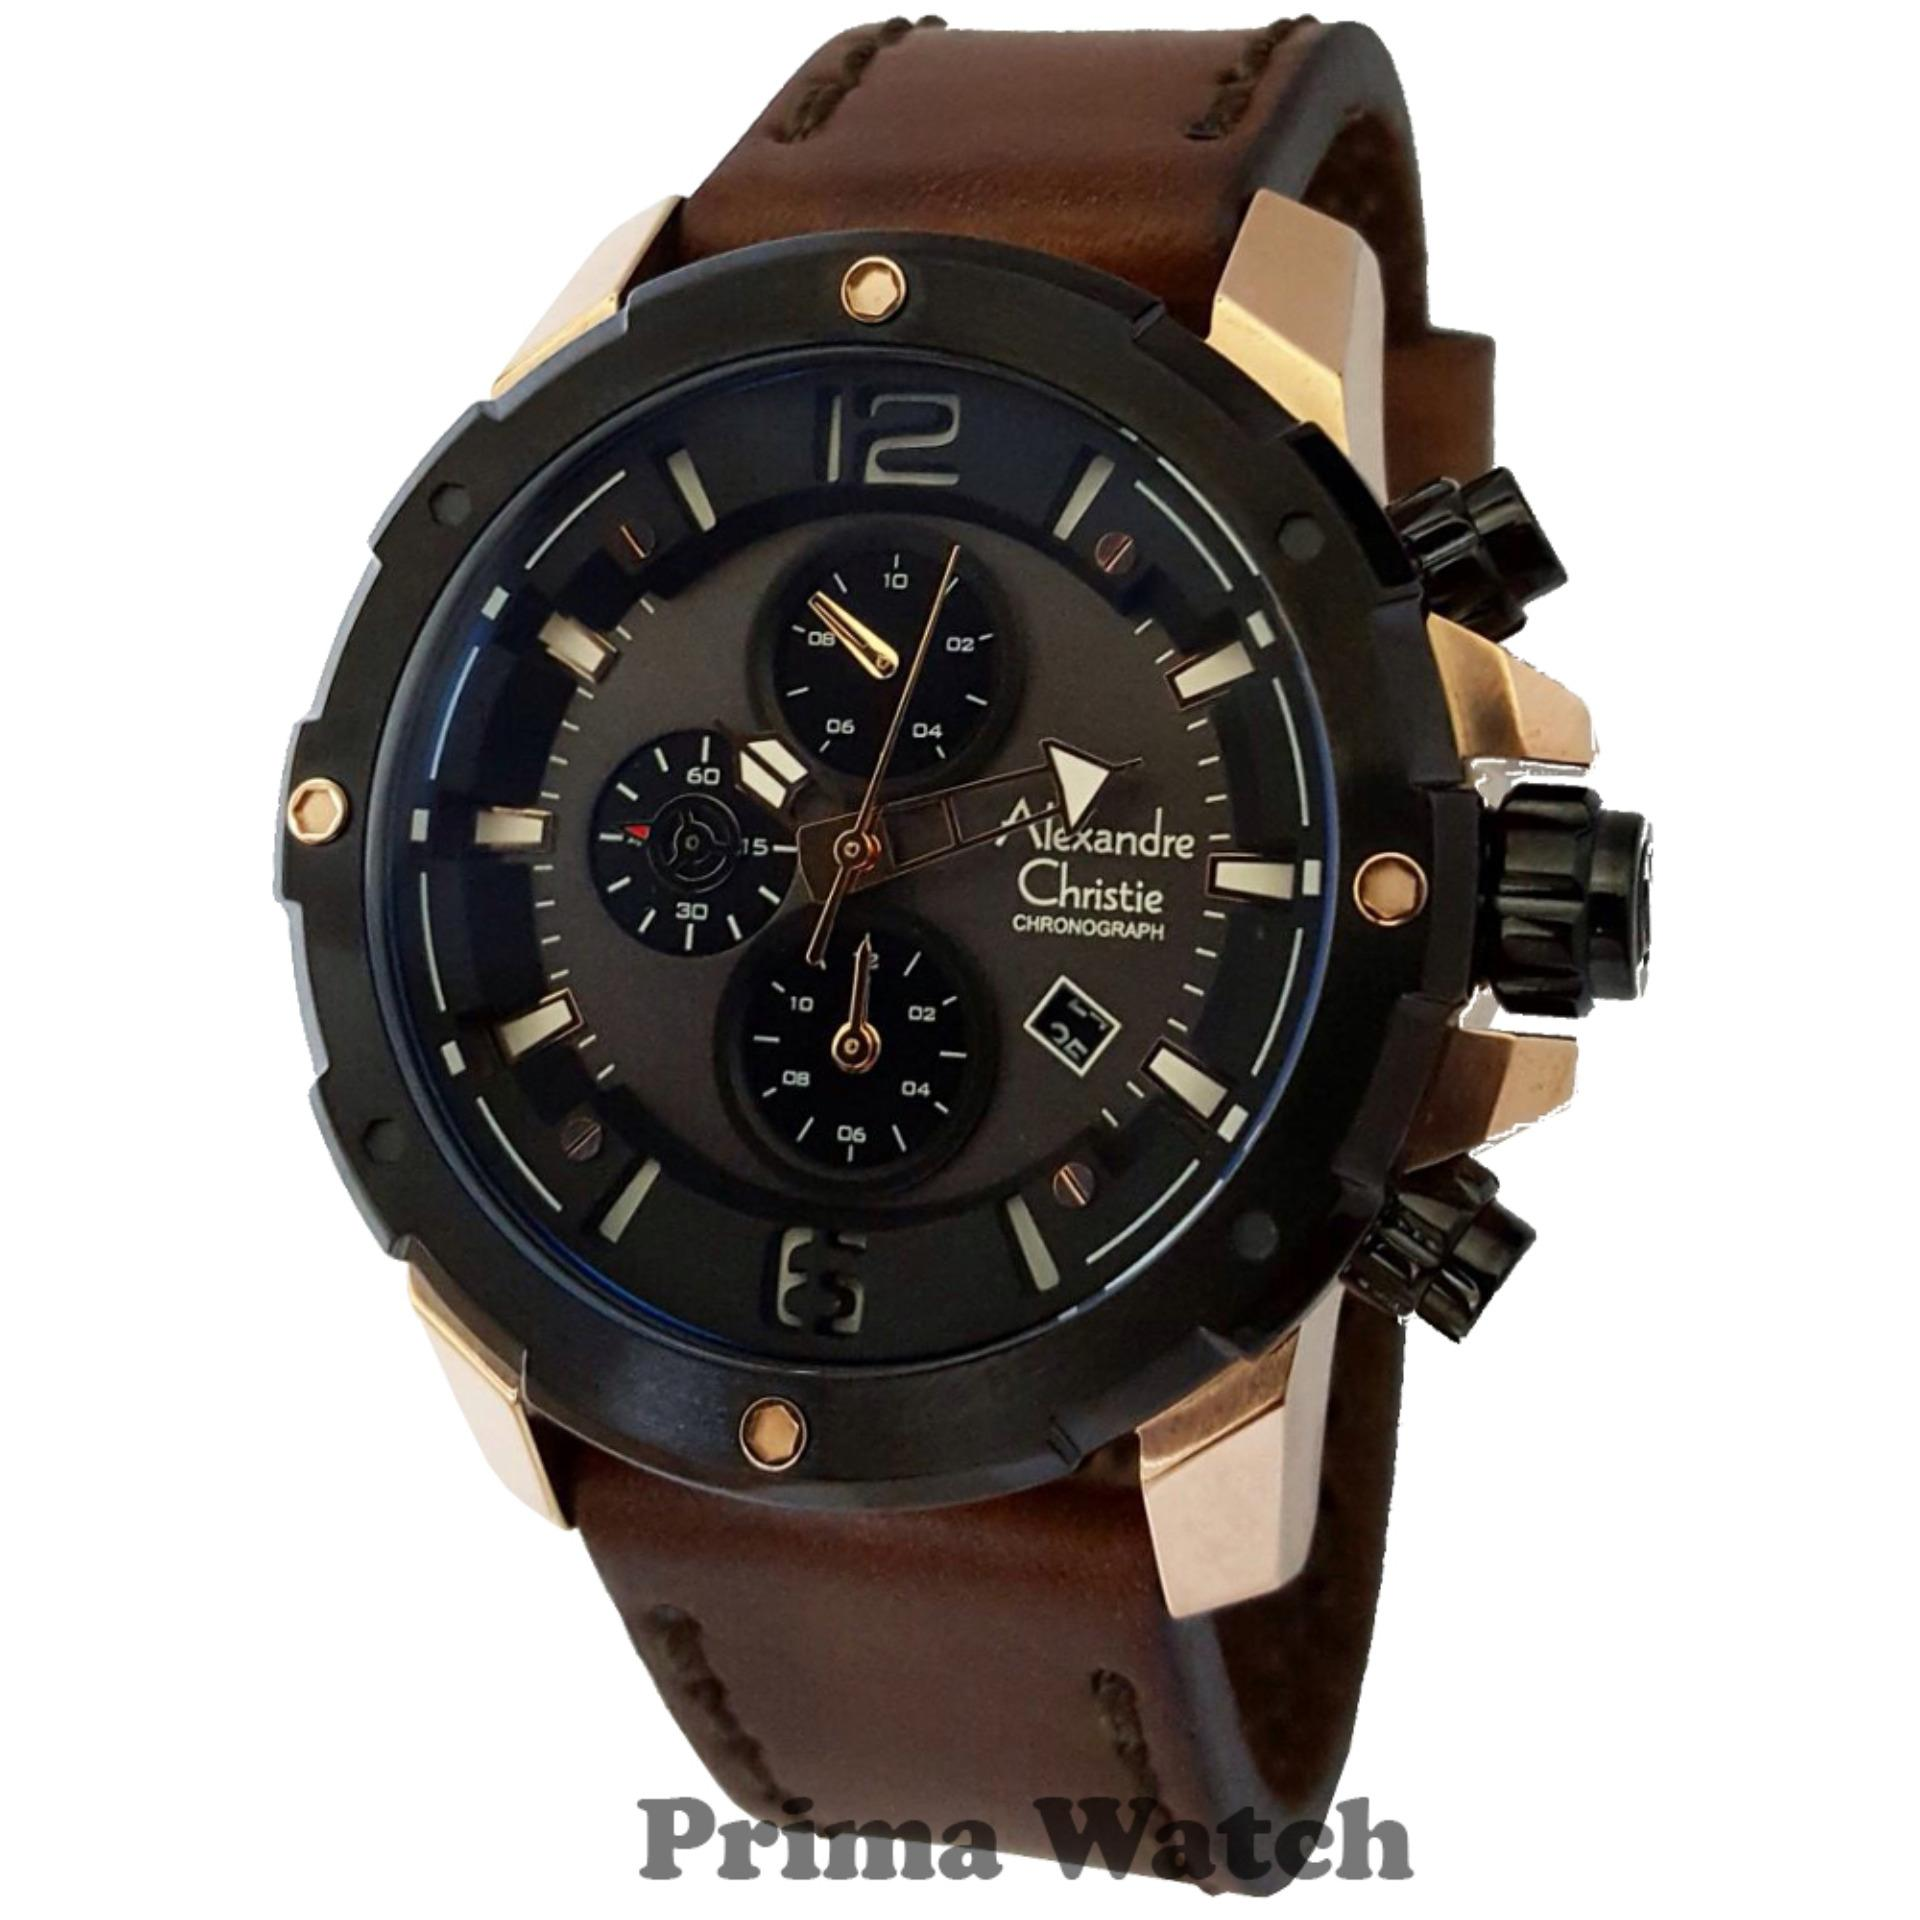 Alexandre Christie Ac6410mck Jam Tangan Pria Strap Leather Coklat Ac6439mc Chronograph Silver Steel Source Rose Gold